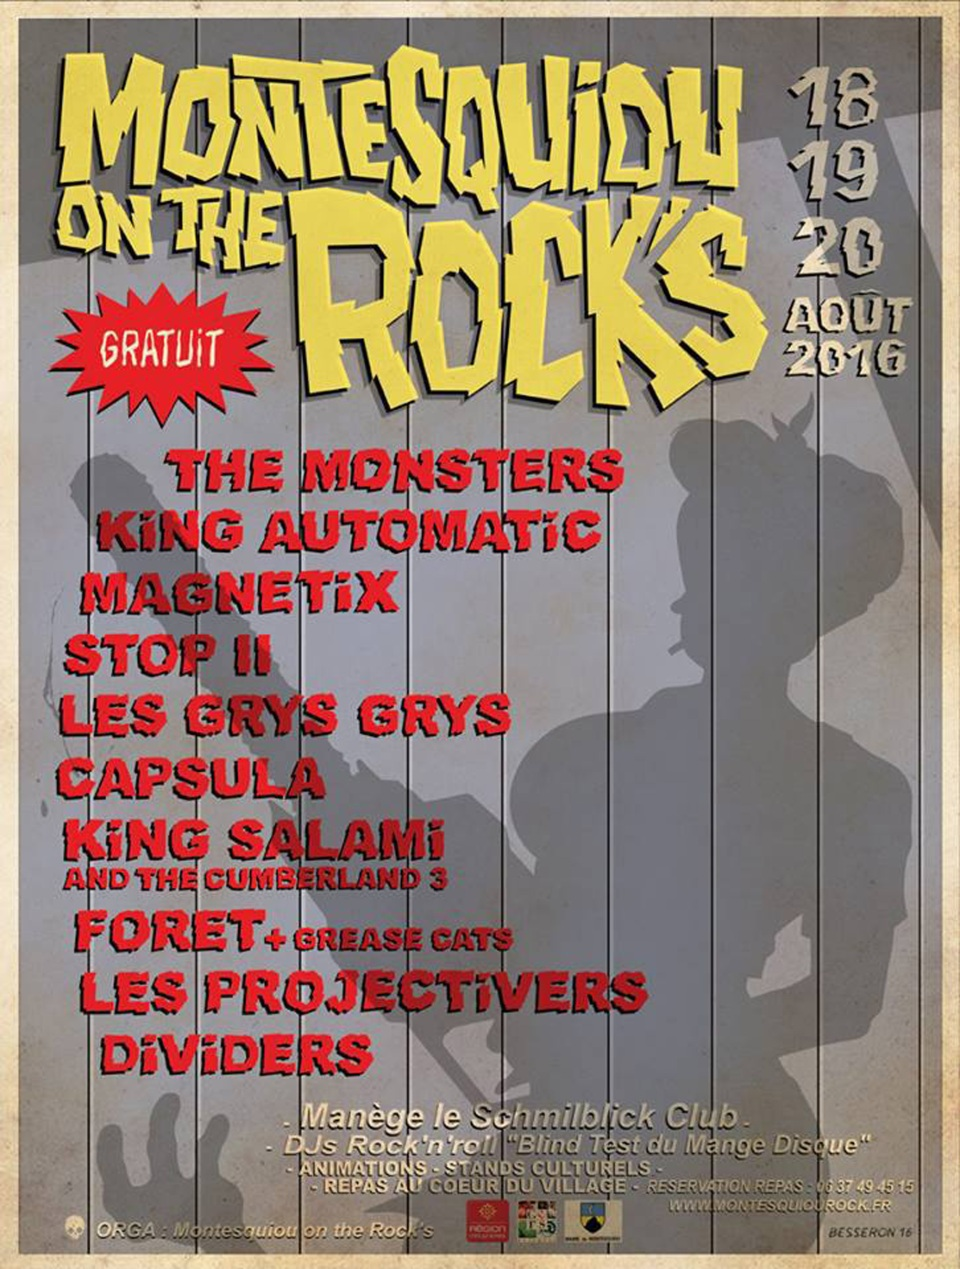 Monstesquiou on the rocks 2016 (Big)